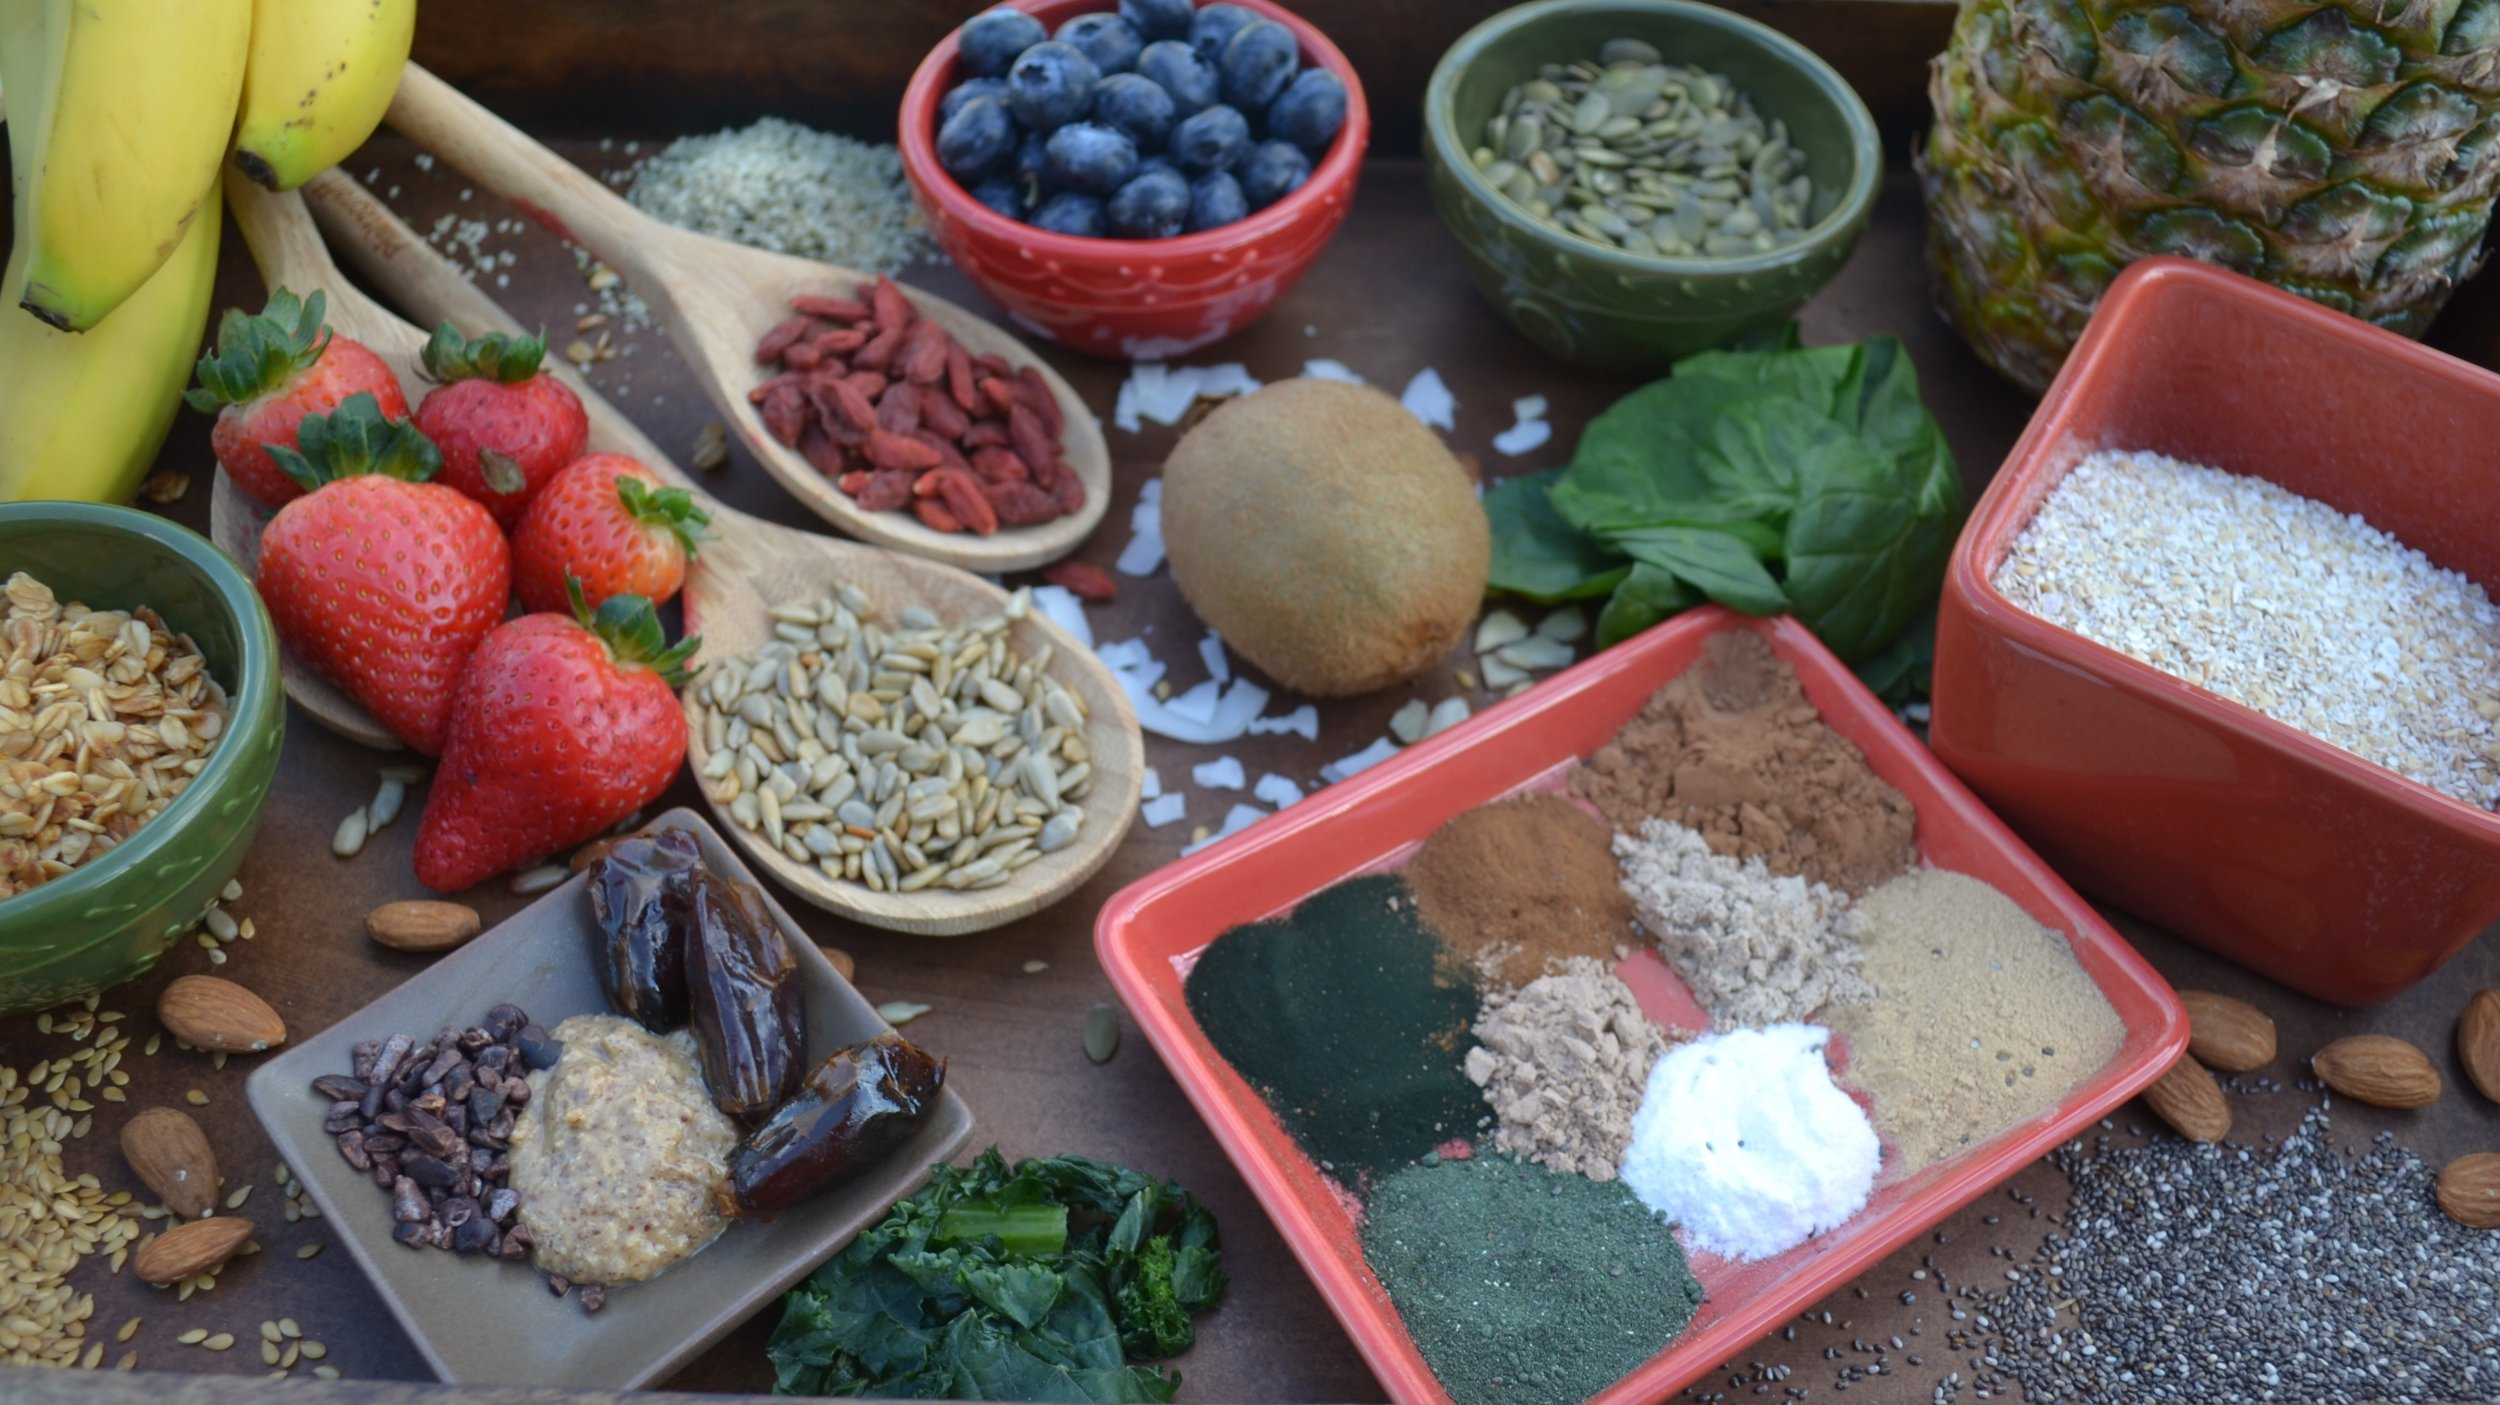 Superfood tray.JPG